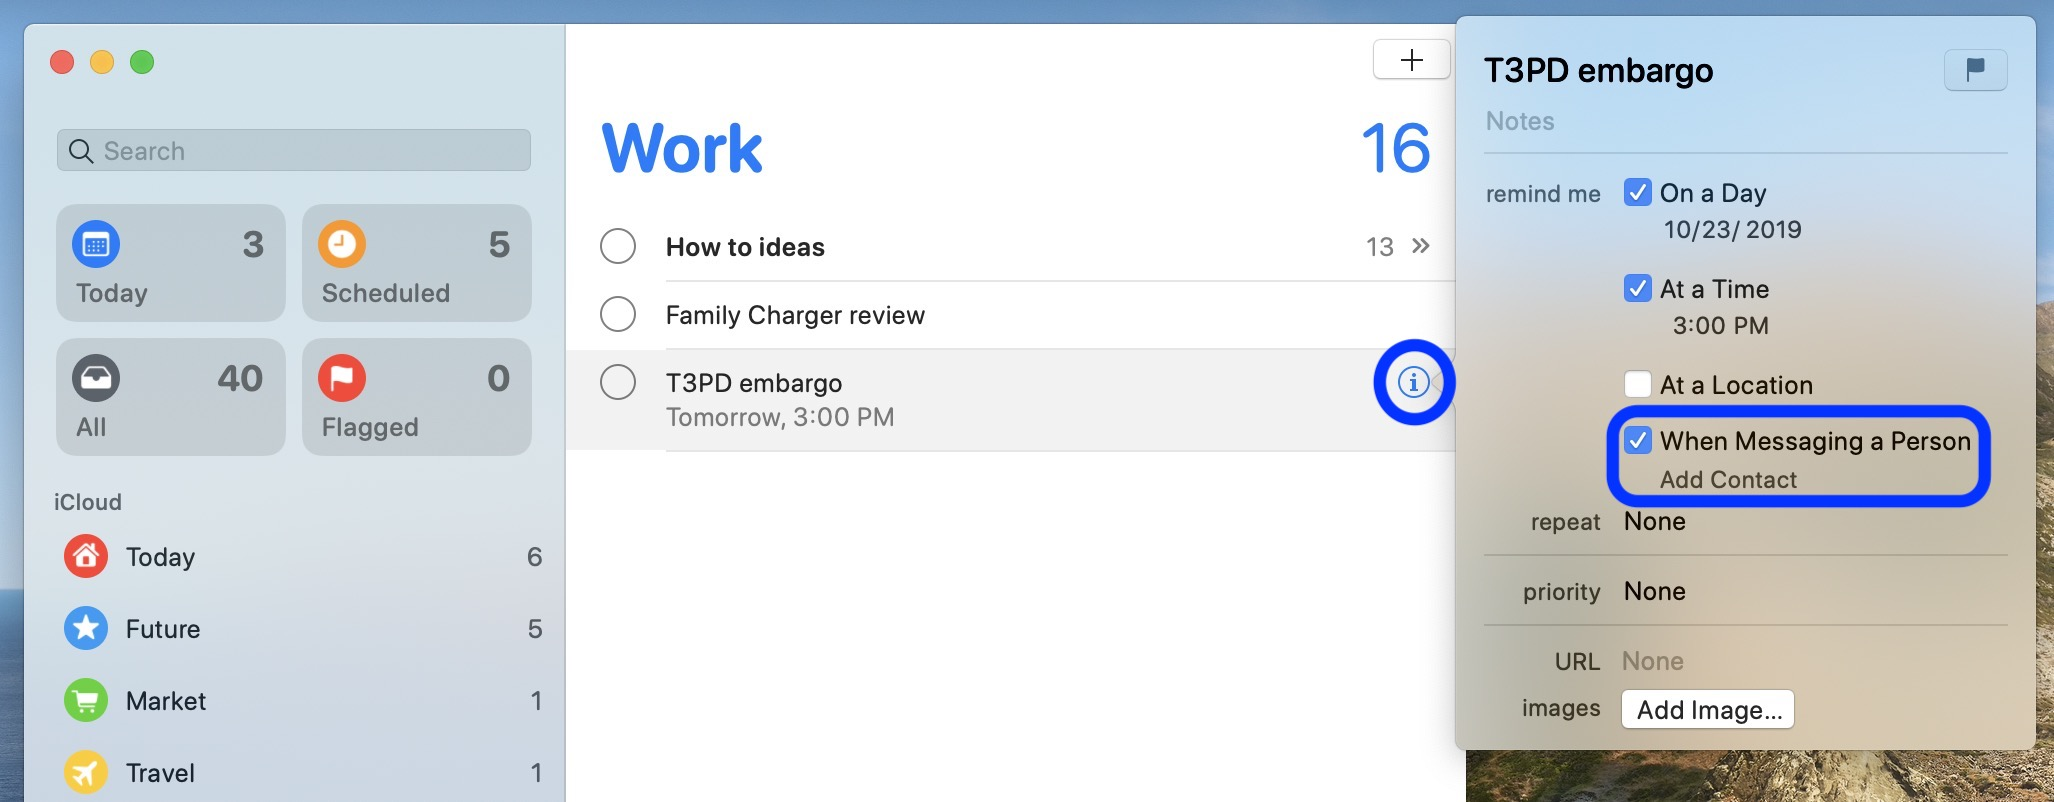 How to use reminders in messages iPhone iPad Mac walkthrough 4